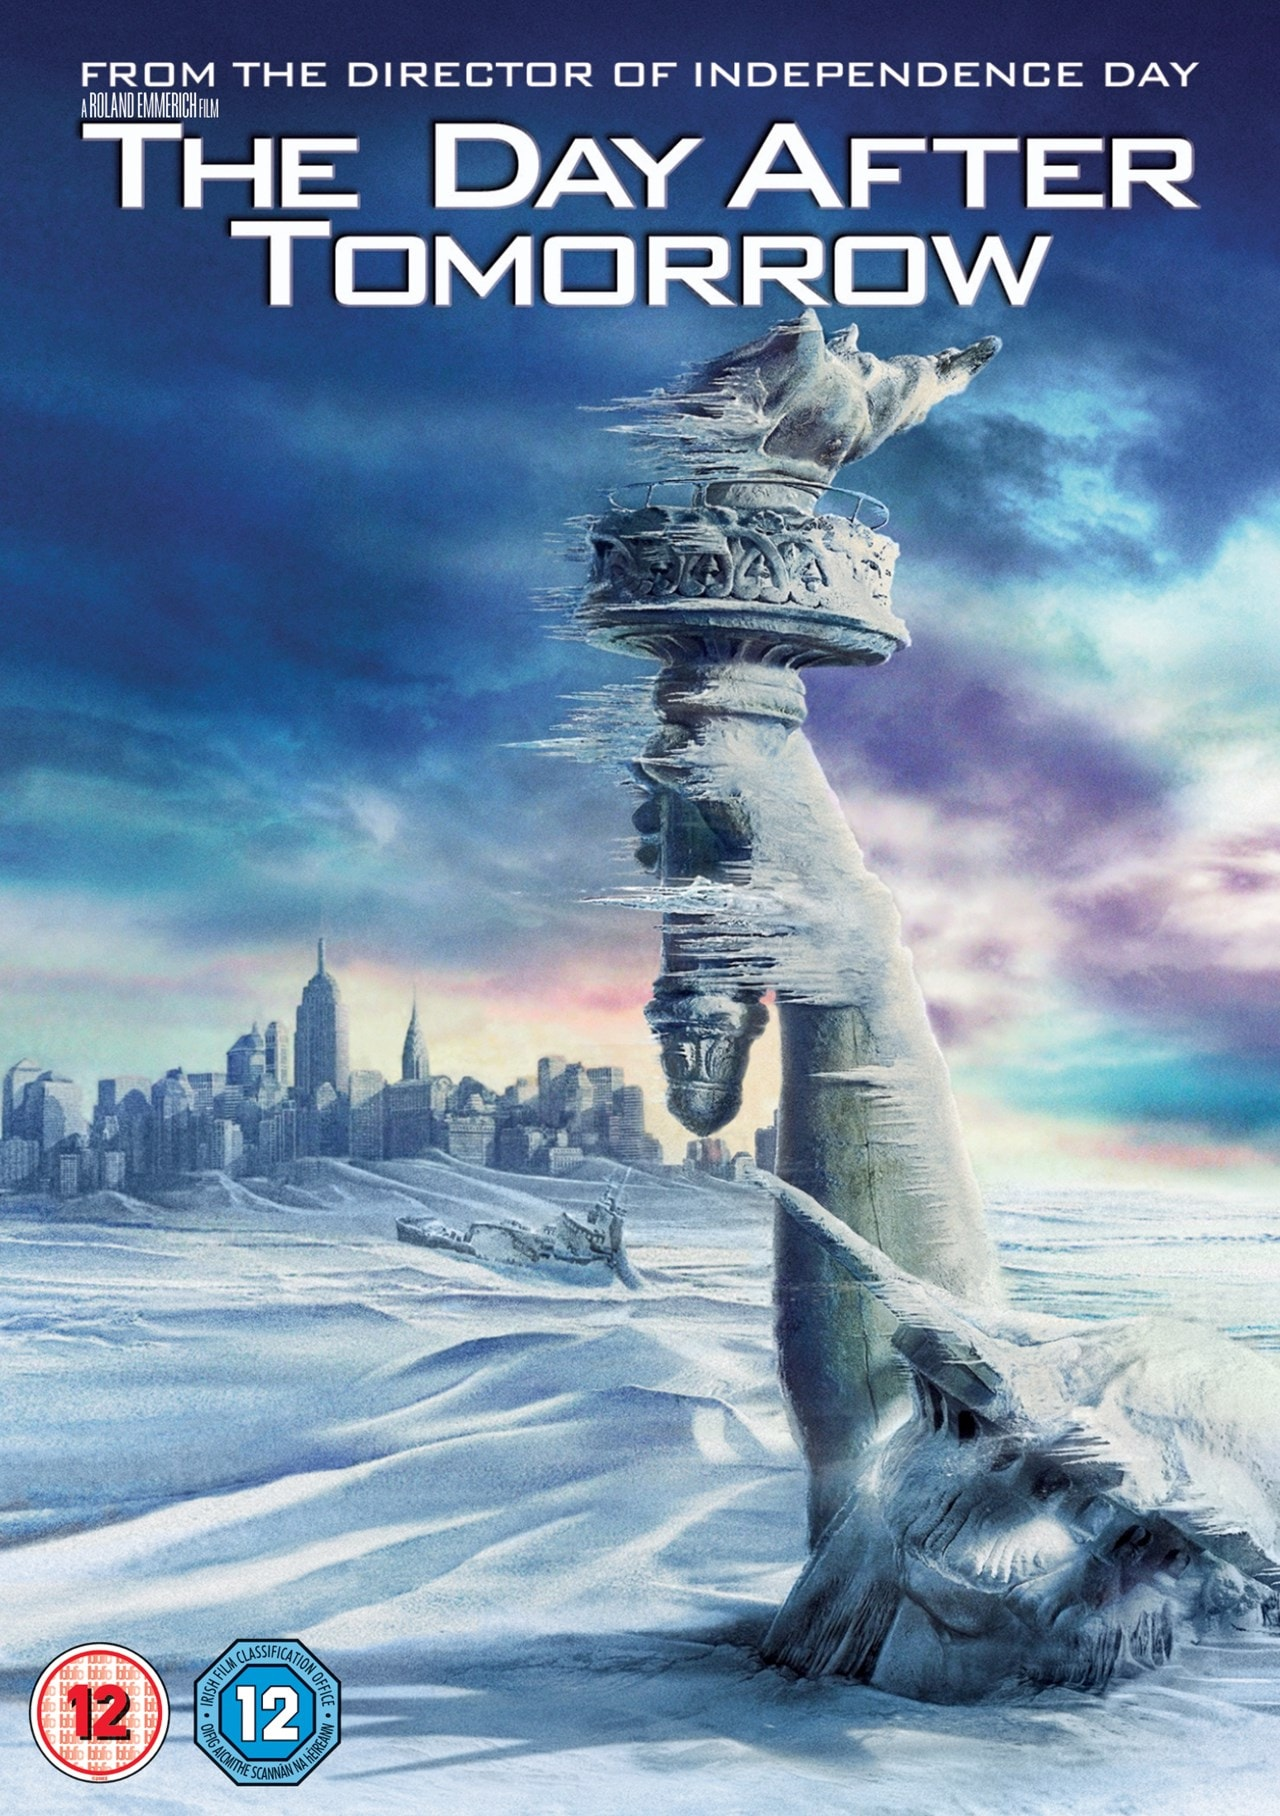 The Day After Tomorrow - 1